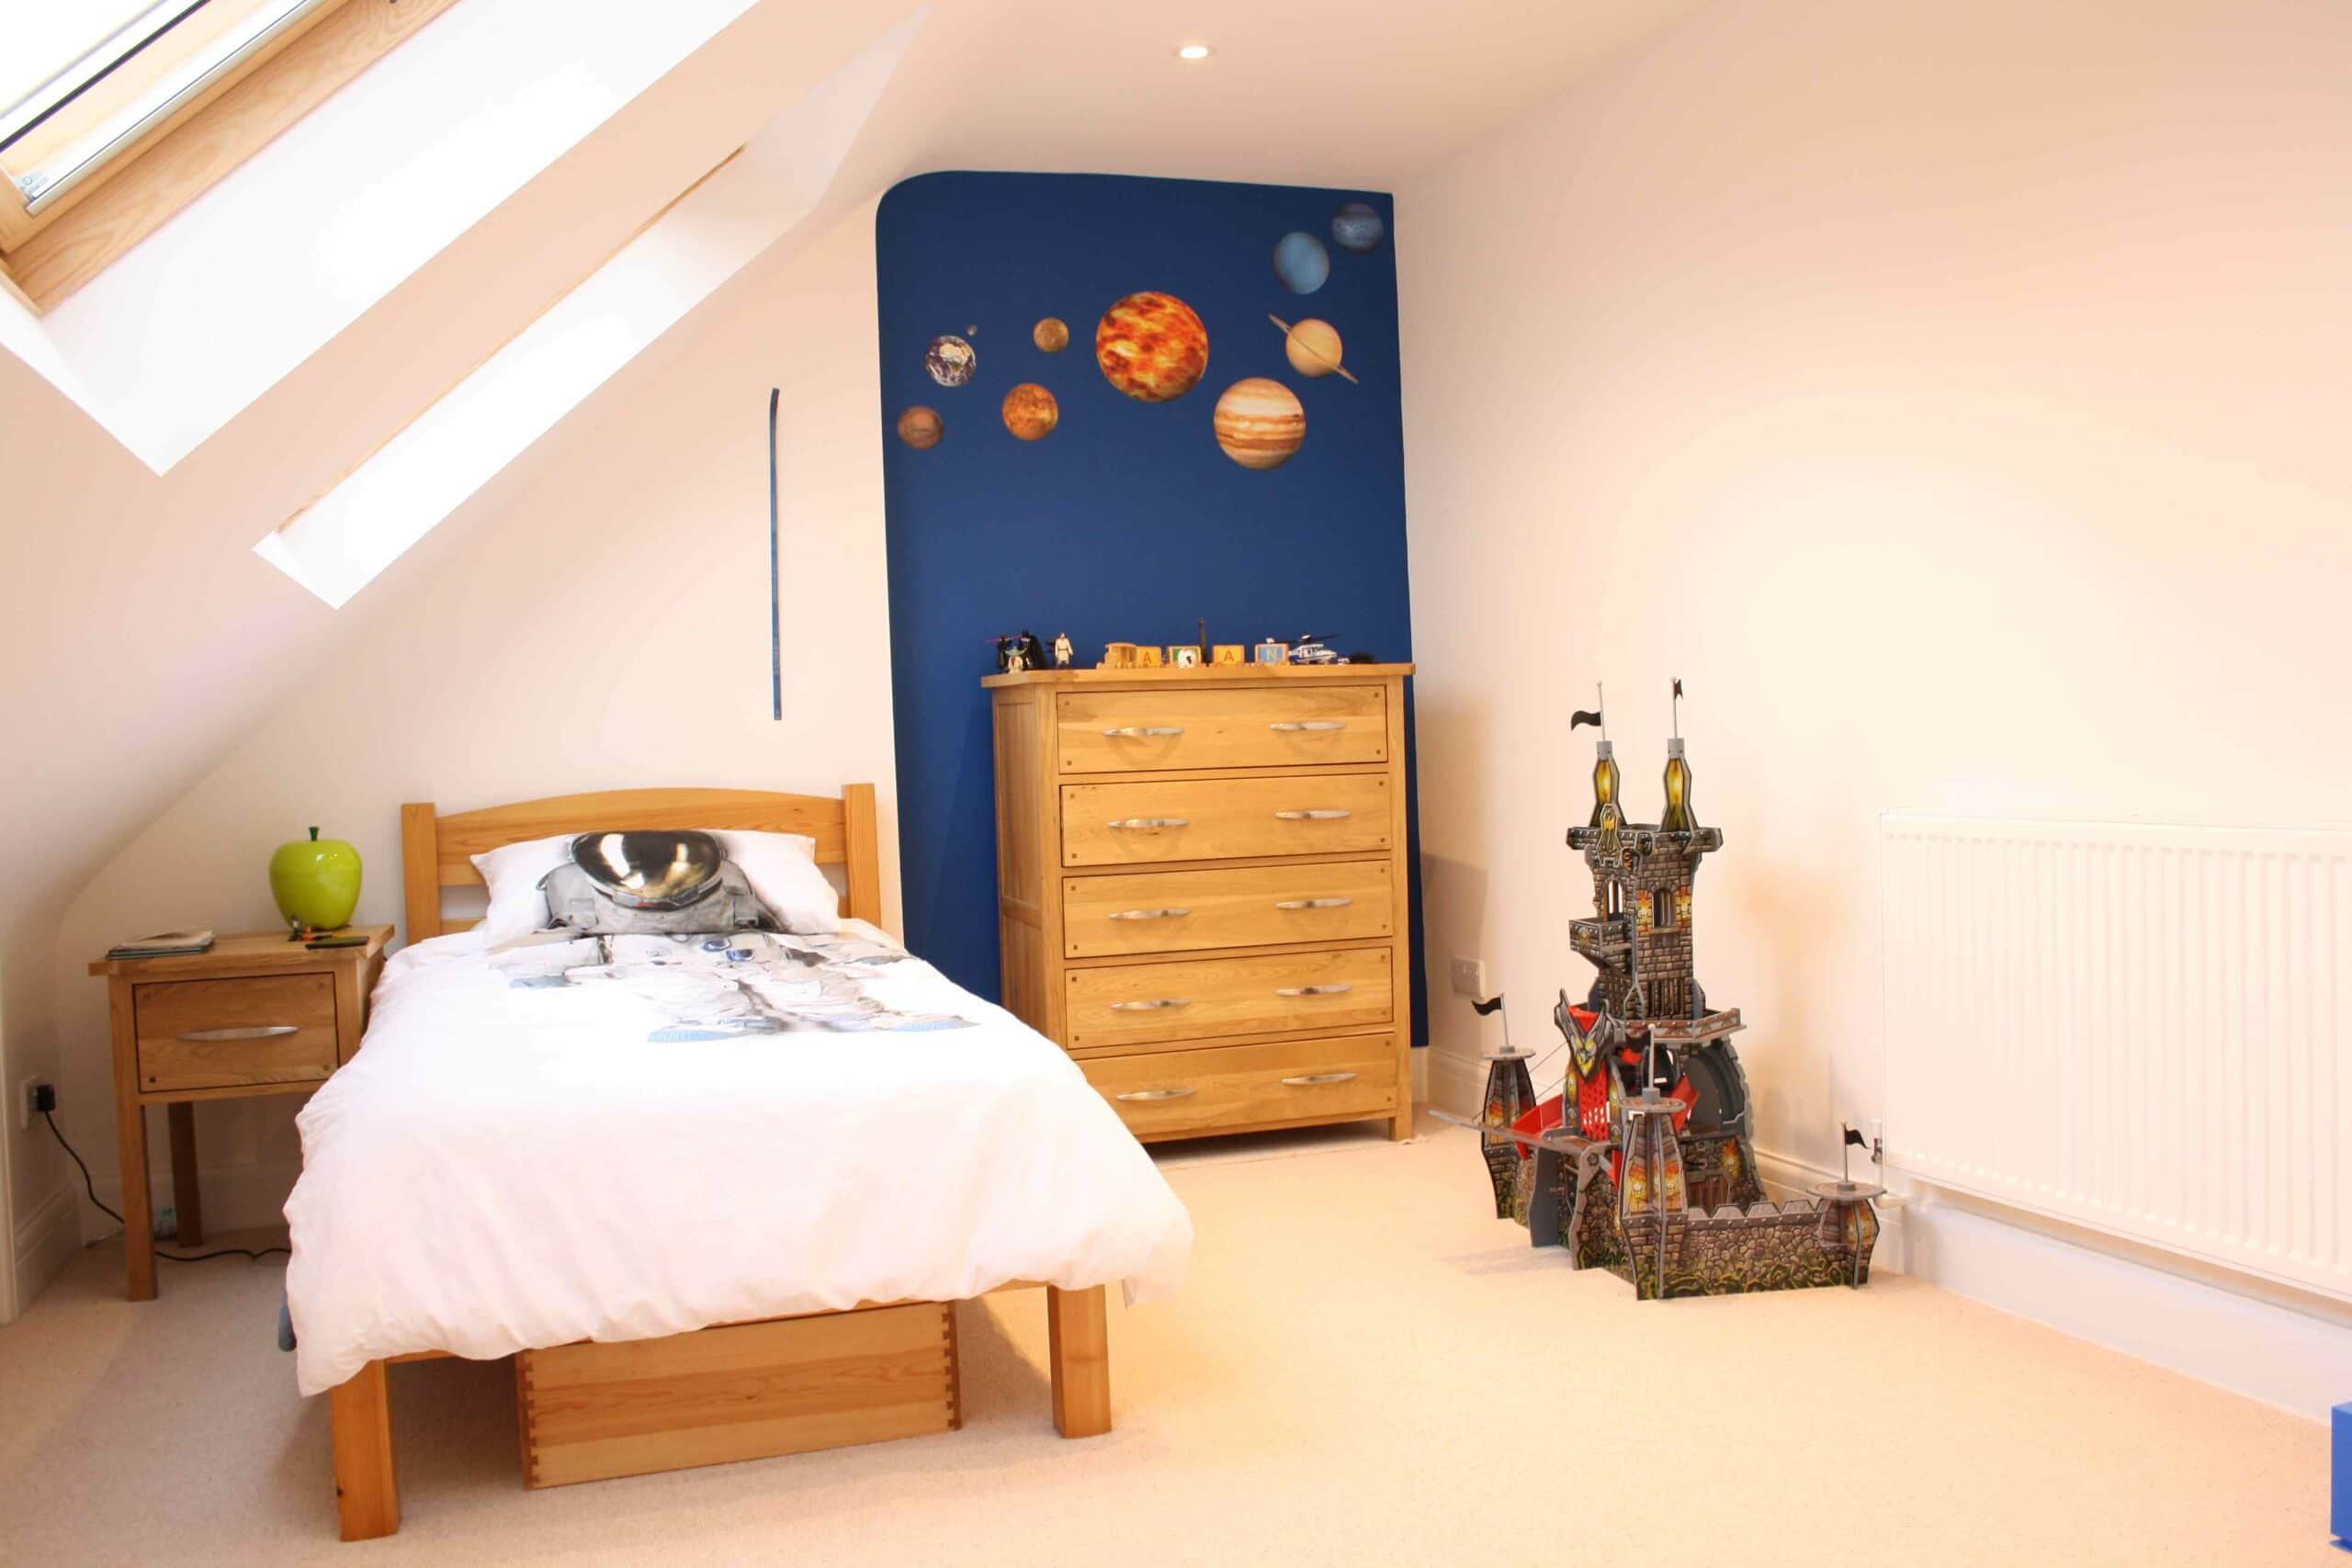 Kids loft conversion shared rooms the pros and cons for Children s bedroom ideas